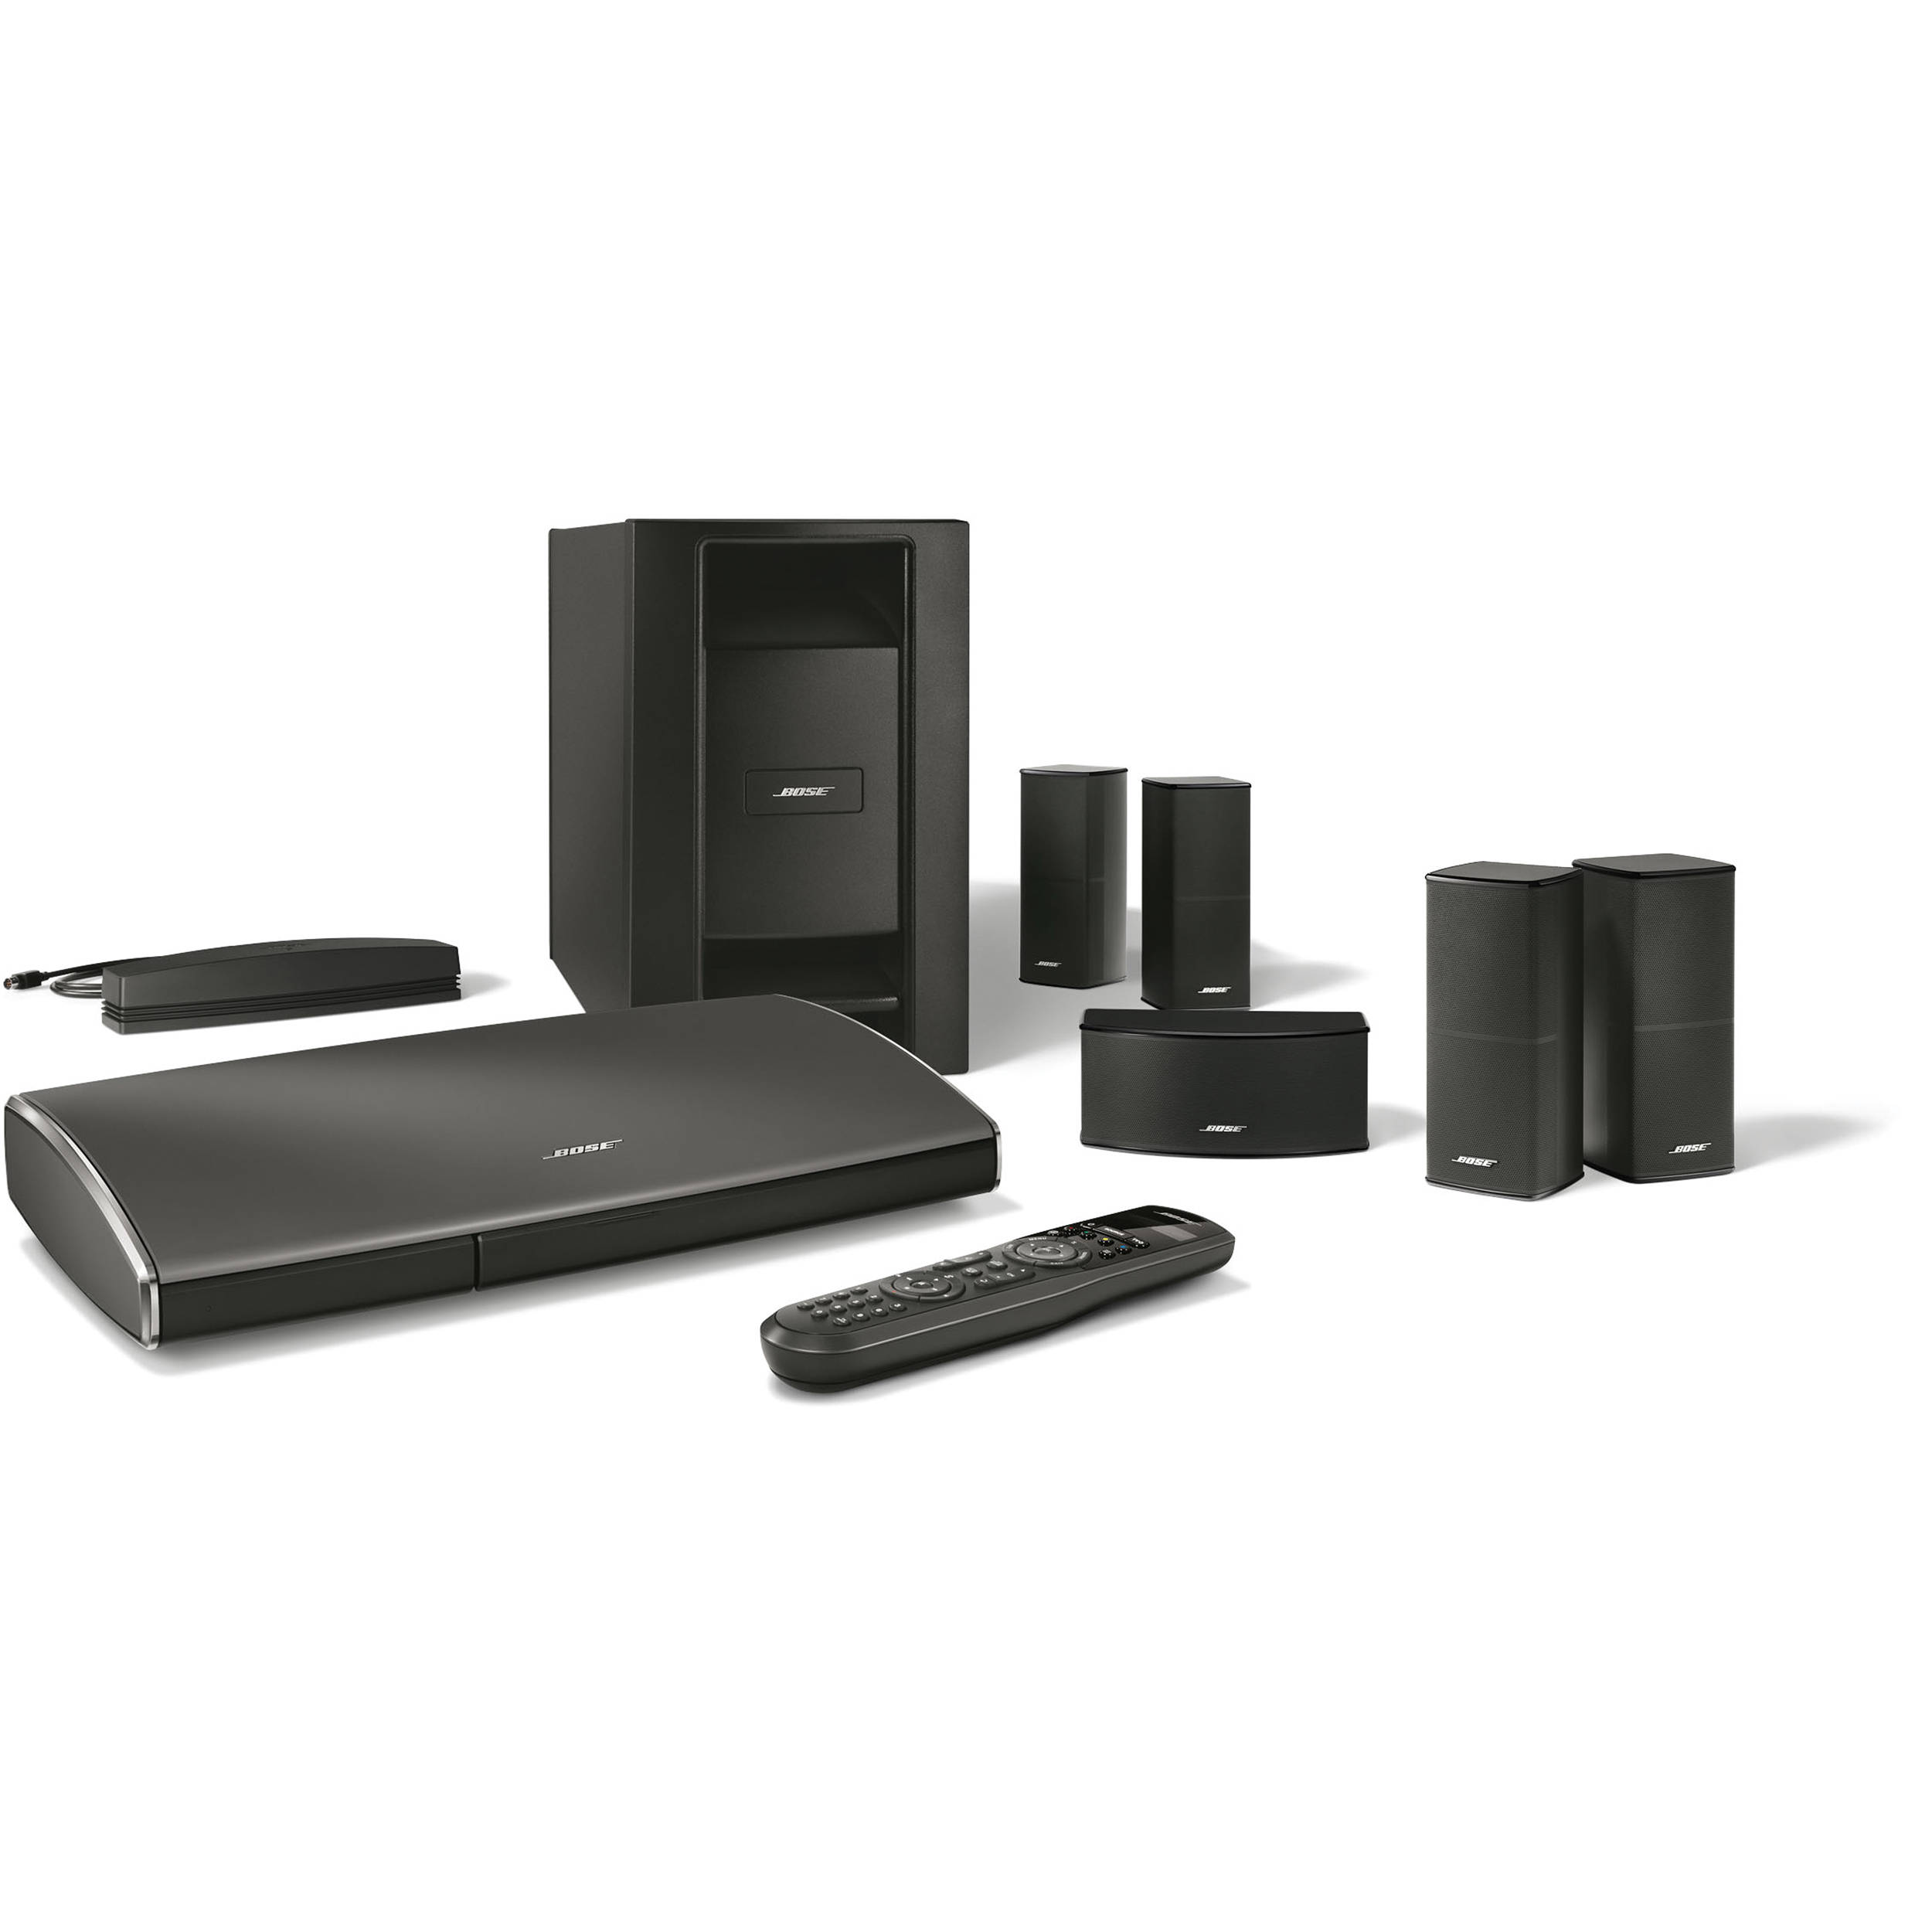 bose lifestyle 535 series iii home theater system 715604 1100. Black Bedroom Furniture Sets. Home Design Ideas